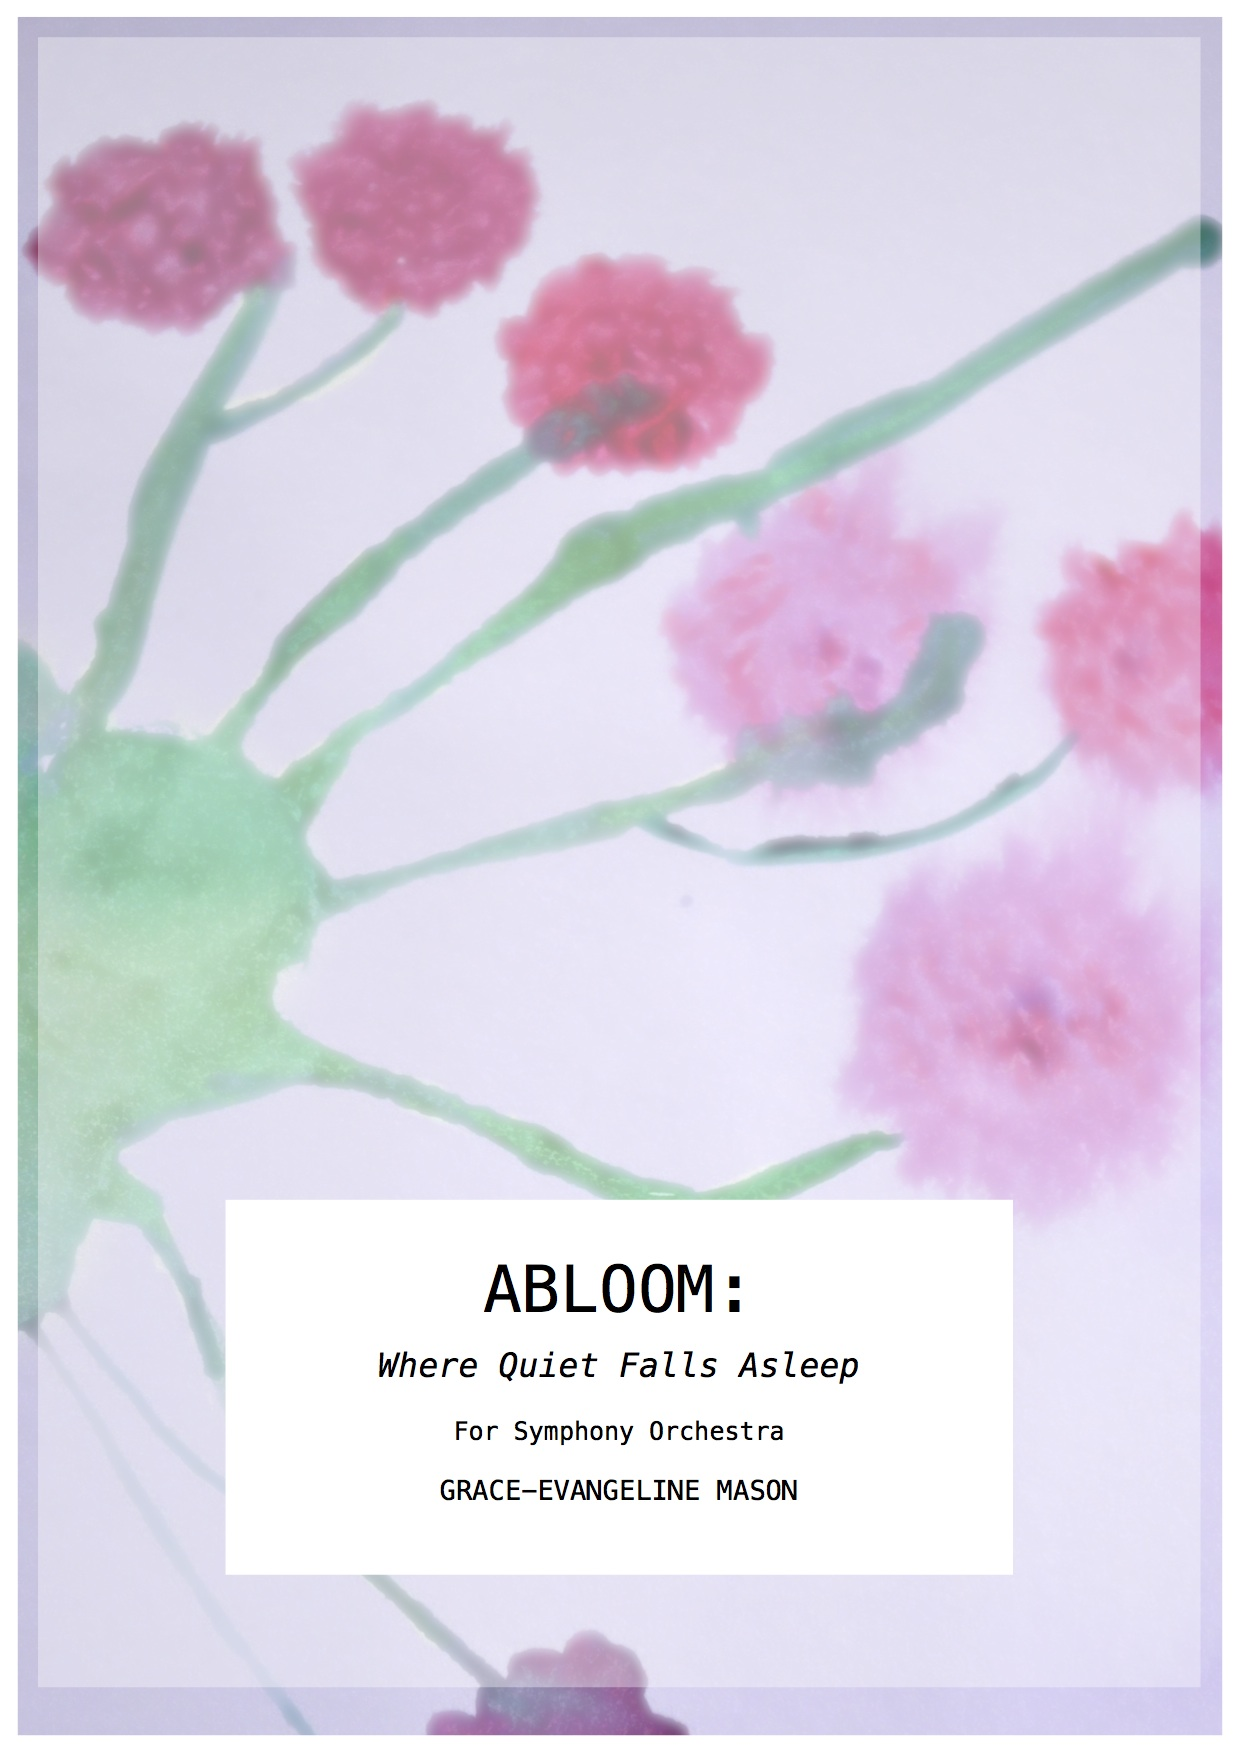 ABLOOM: Where Quiet Falls Asleep (2017) - for orchestraDuration: 4'30